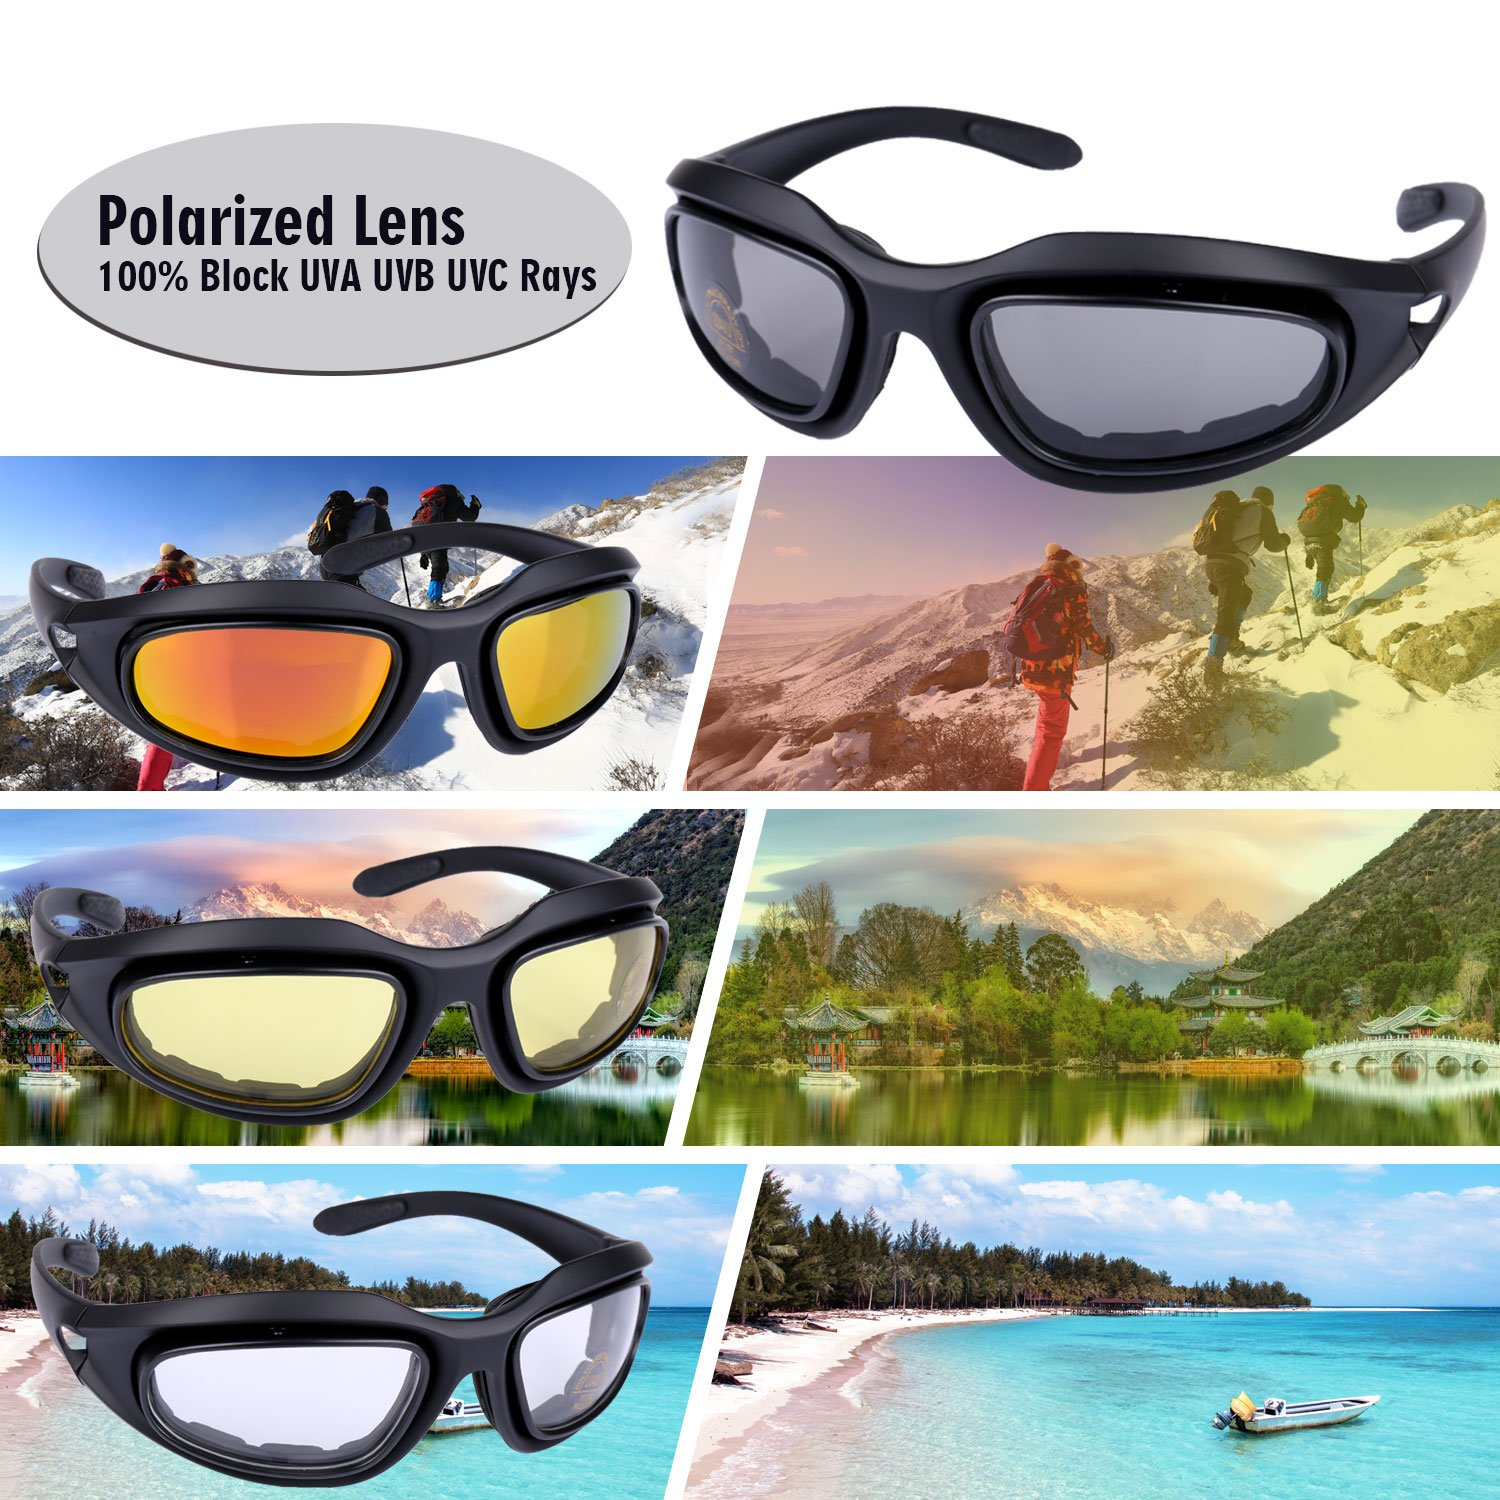 09ee3bba5aa7 ActionEliters Tactical Eyewear Eyeshield Polarized UV400 Protective  Shooting Safety Glasses Kit w/ 3 Lenses for Shooting Driving Fishing  Running and More ...